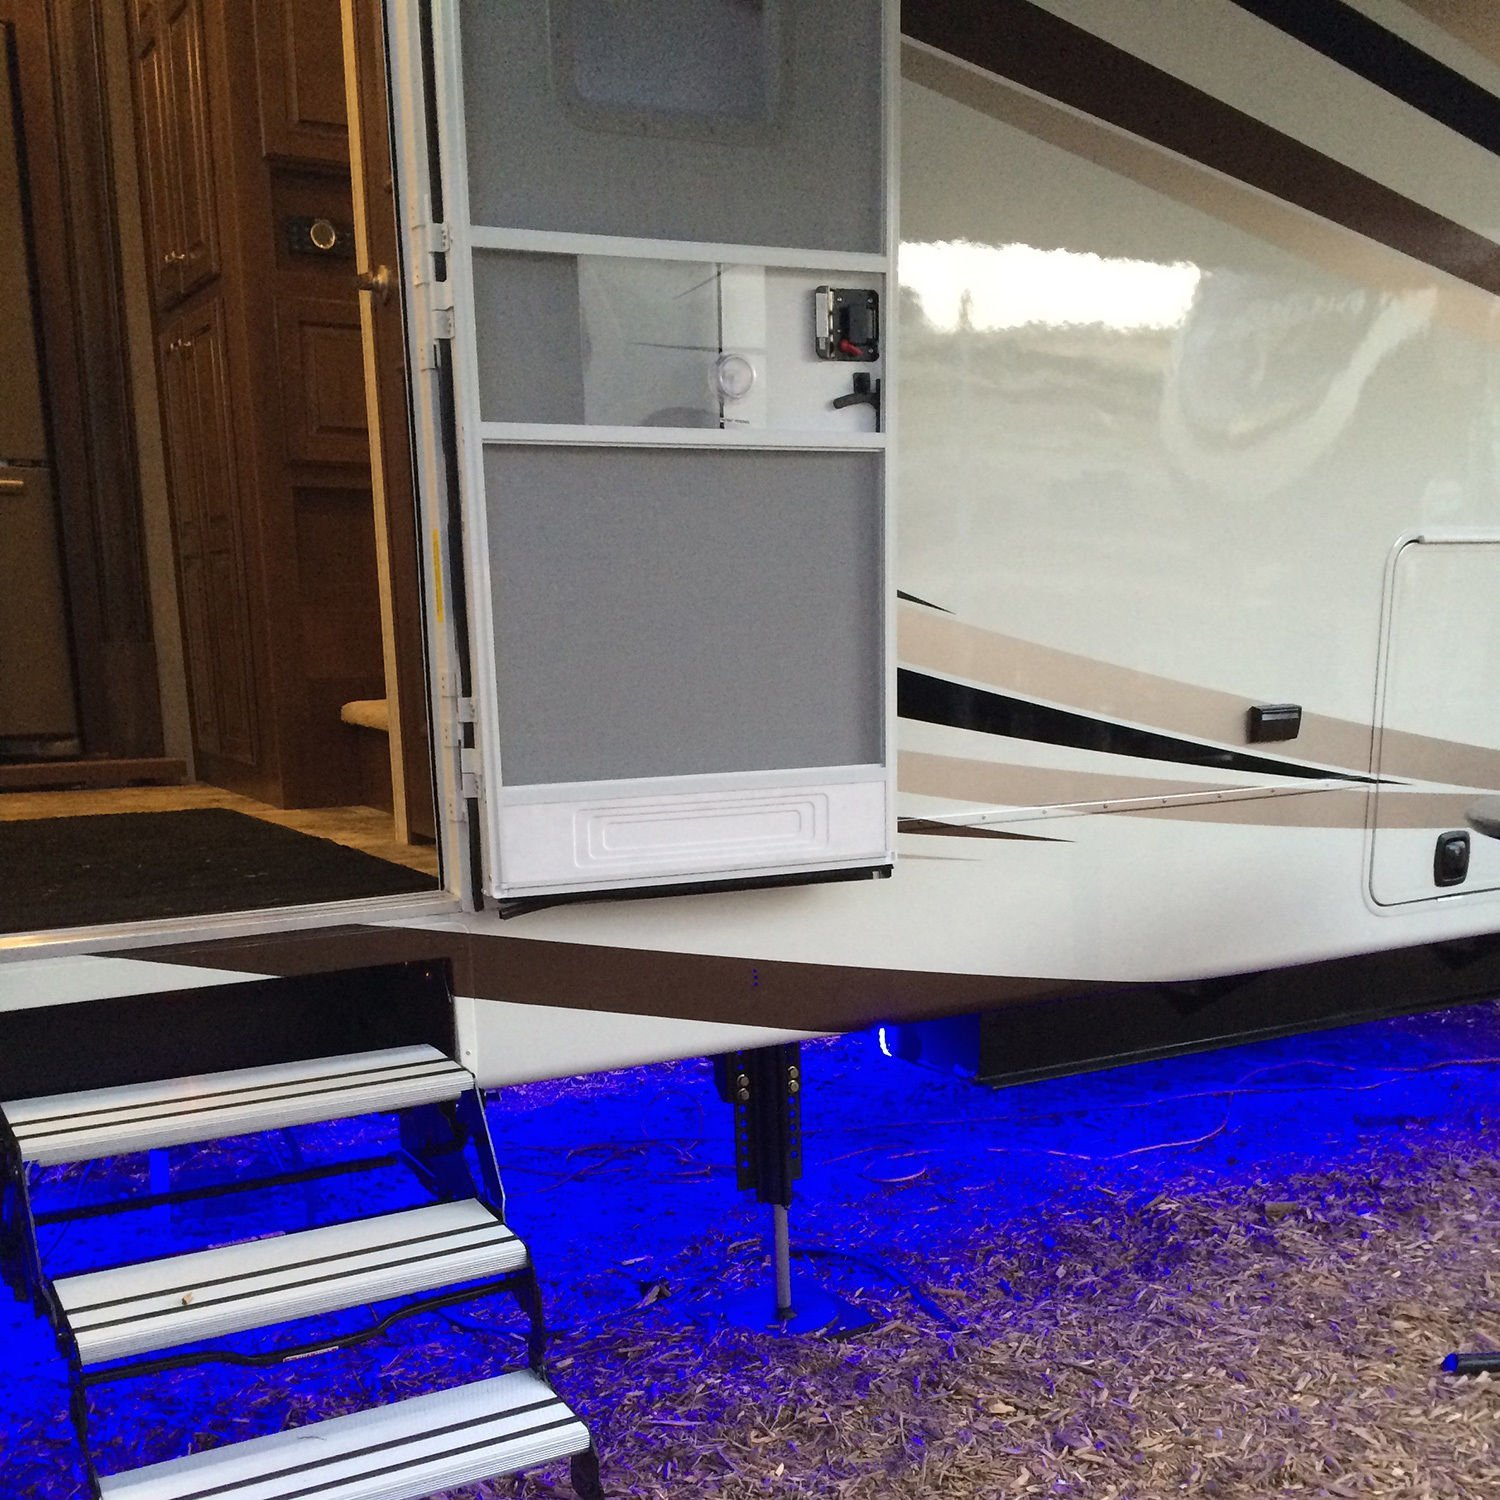 RV Recreational Vehicle Awning LED Light Strip RGB Multi Colored with 44 Key IR Remote and Power Source (4 Foot Length) by RC Lighthouse (Image #1)